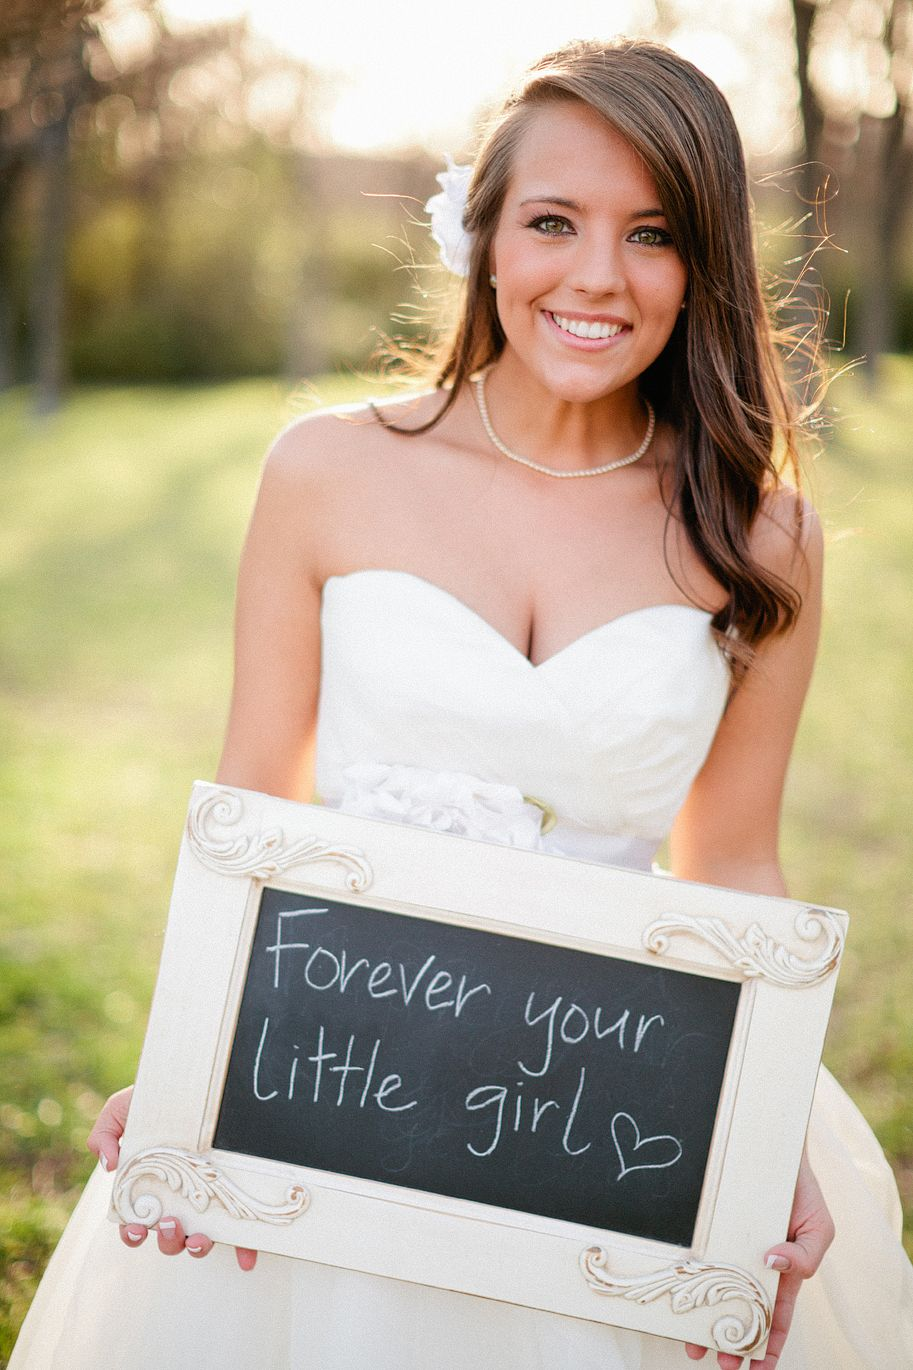 a thoughtful wedding present for mom and dad